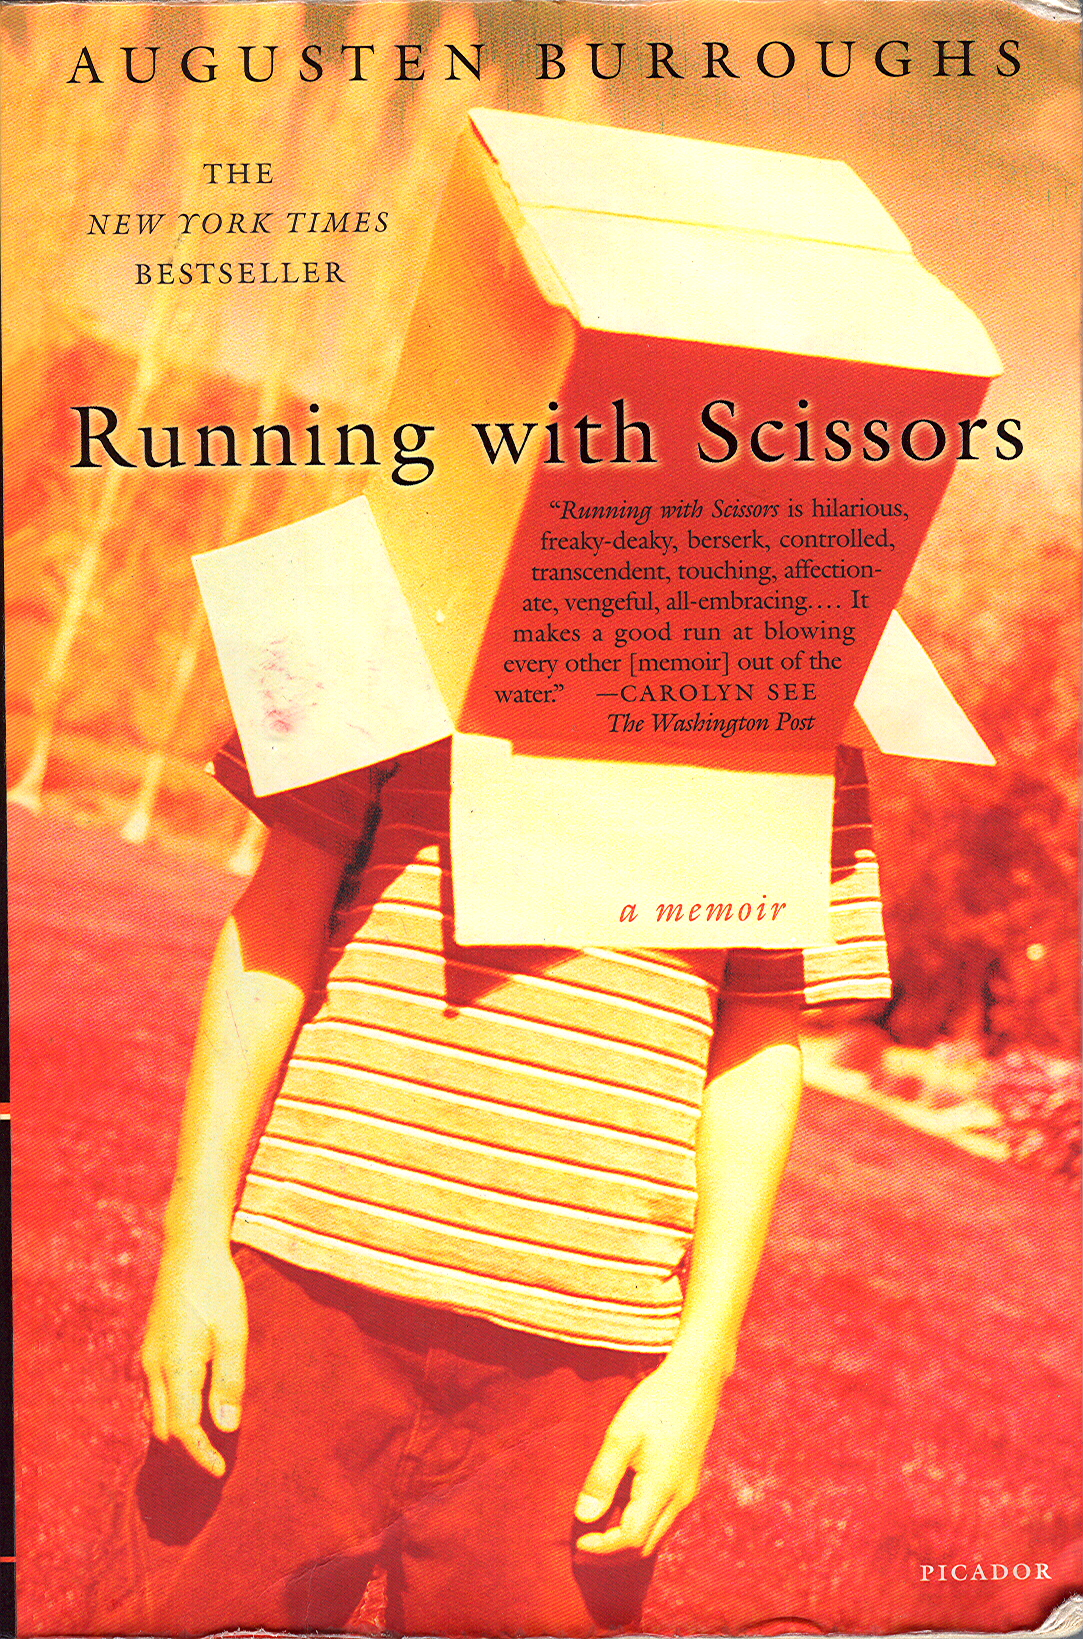 Massachussetts: Running With Scissors by Augusten Burroughs